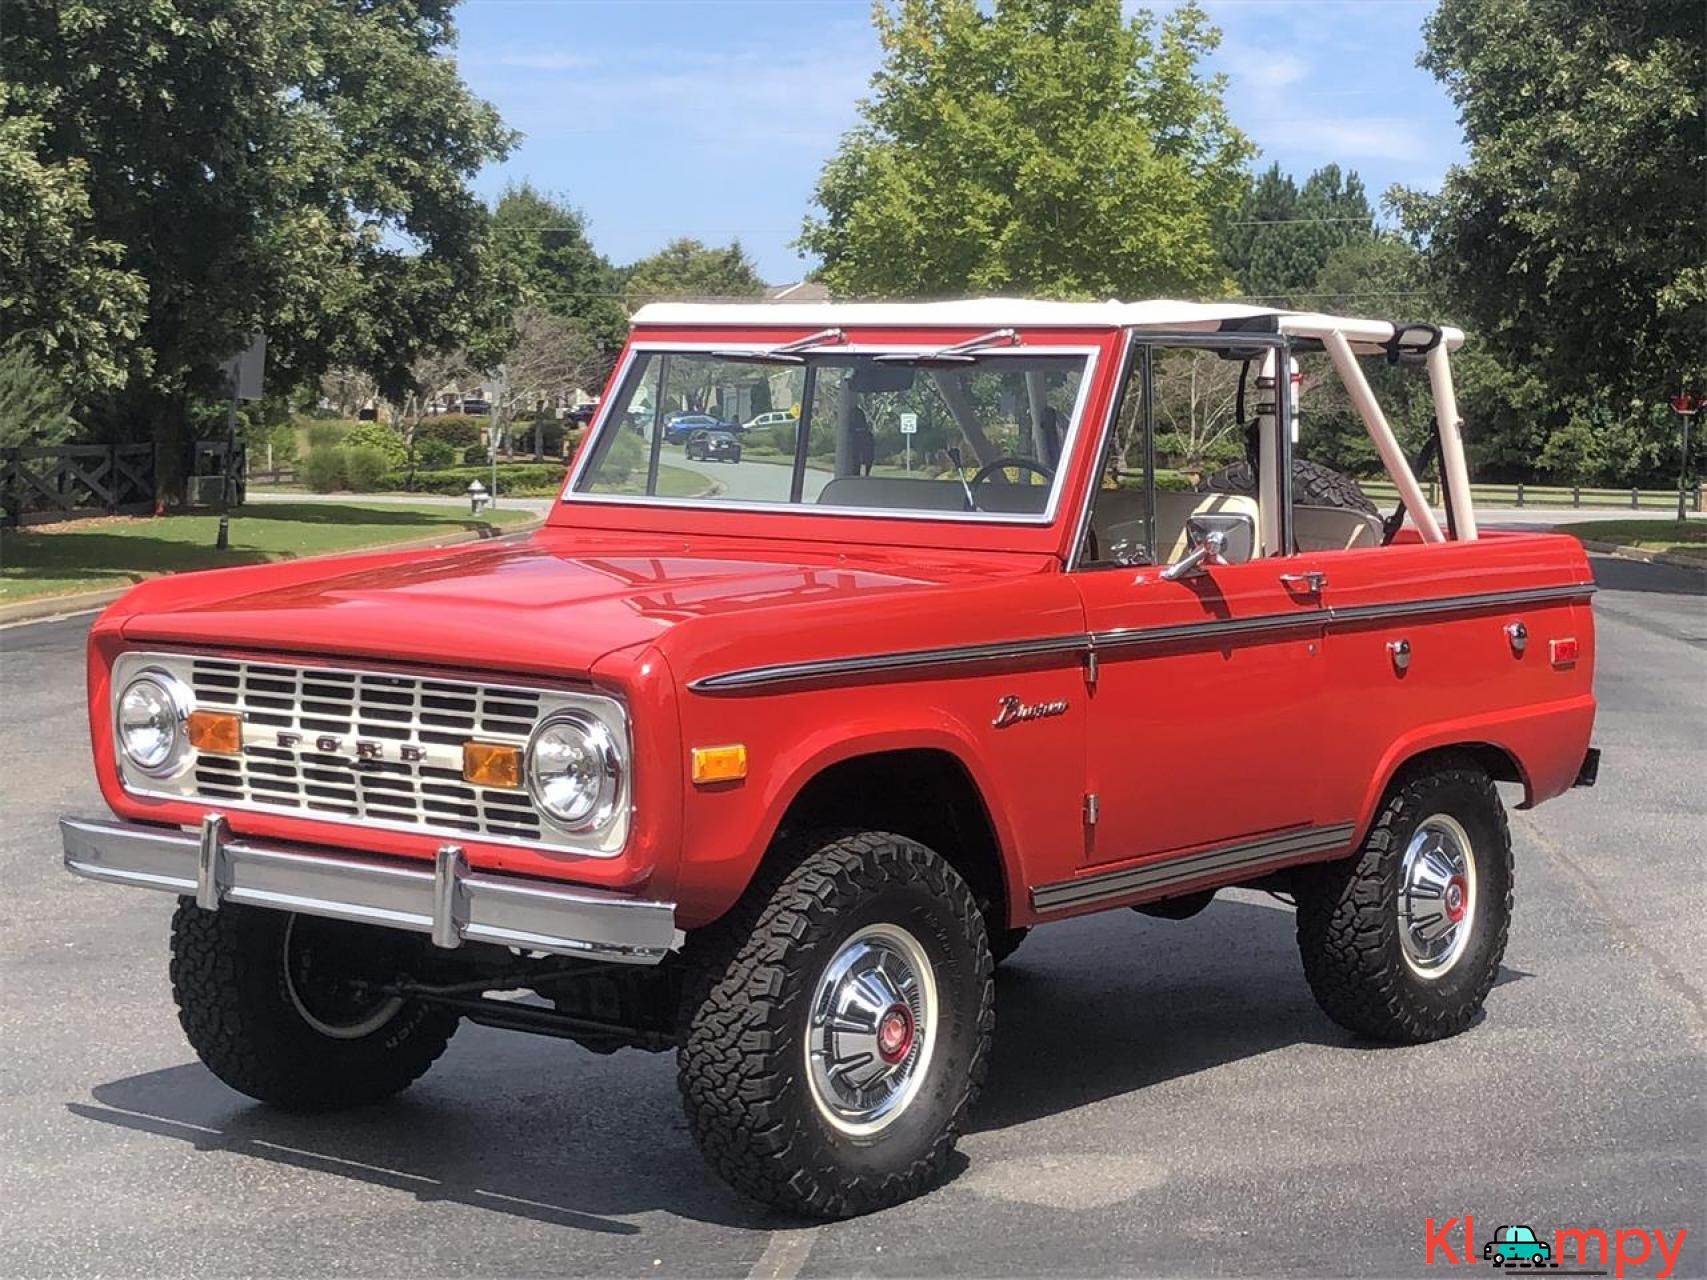 1974 Ford Bronco STRONG 302 - 5/20